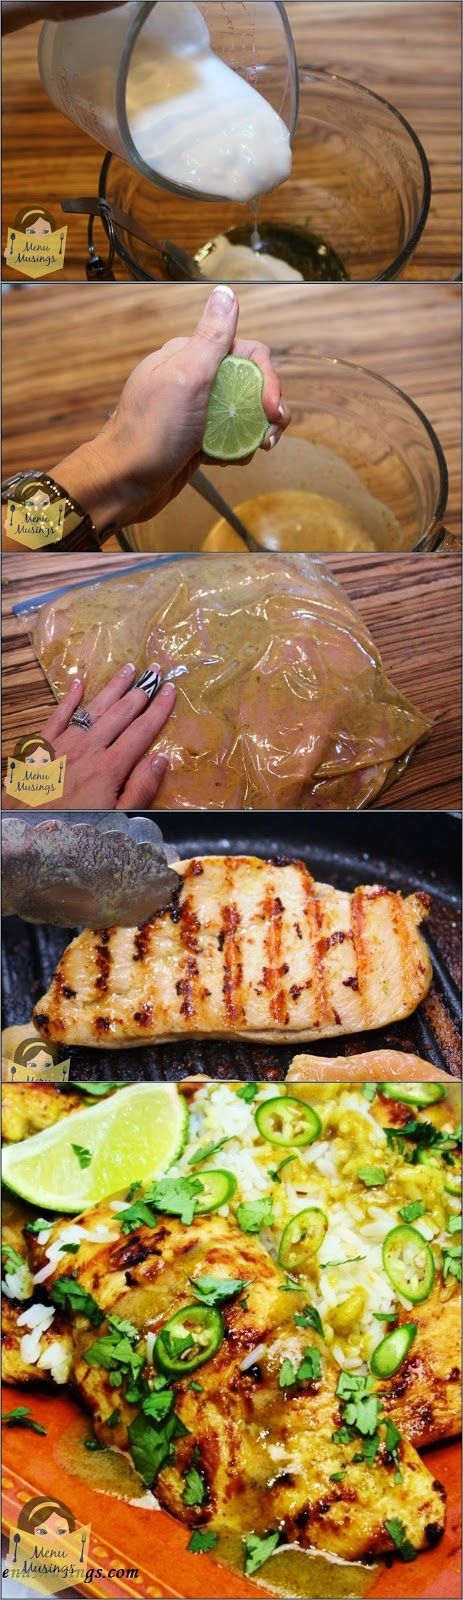 Coconut Lime Chicken! Step-by-step photos!